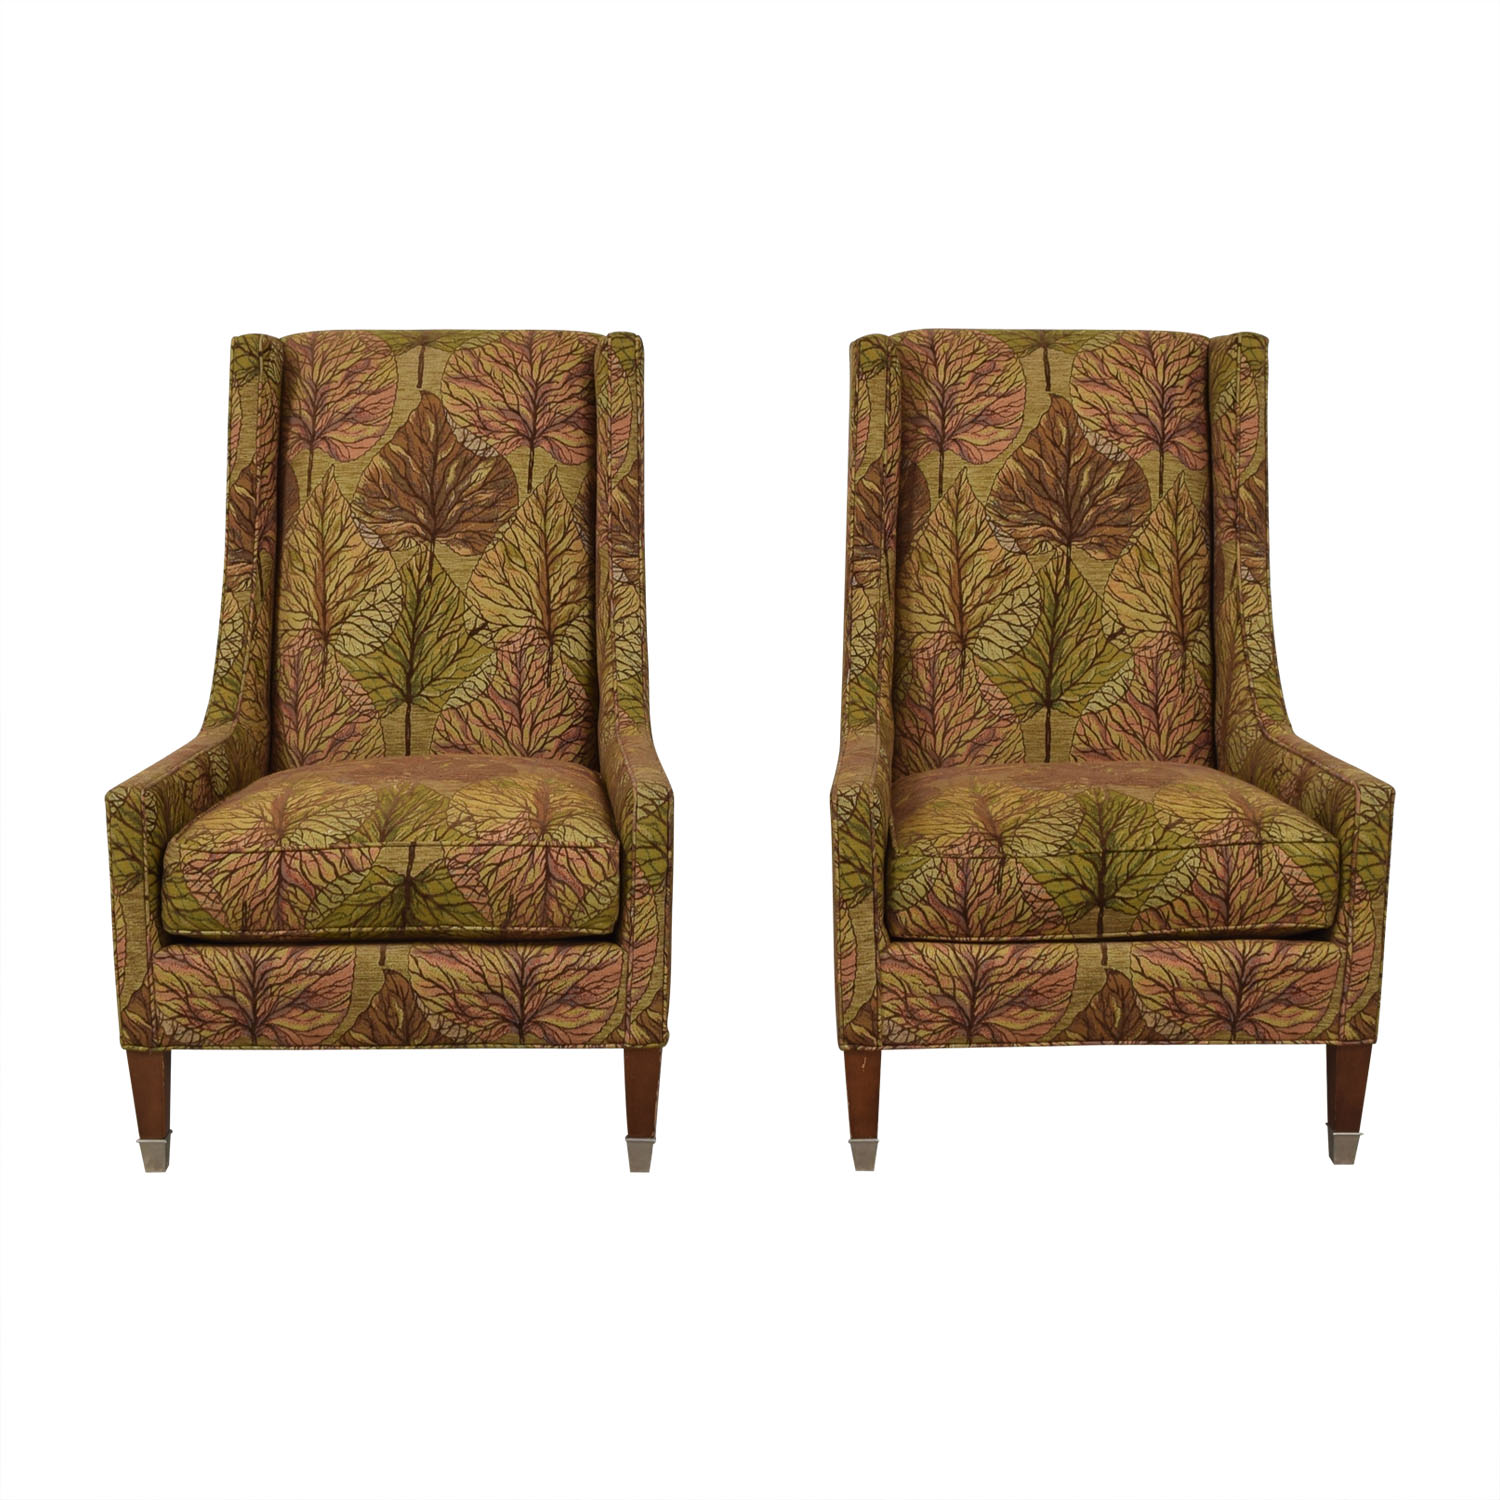 Kravet Kravet Furniture Multi-Colored Upholstered High Back Chairs discount